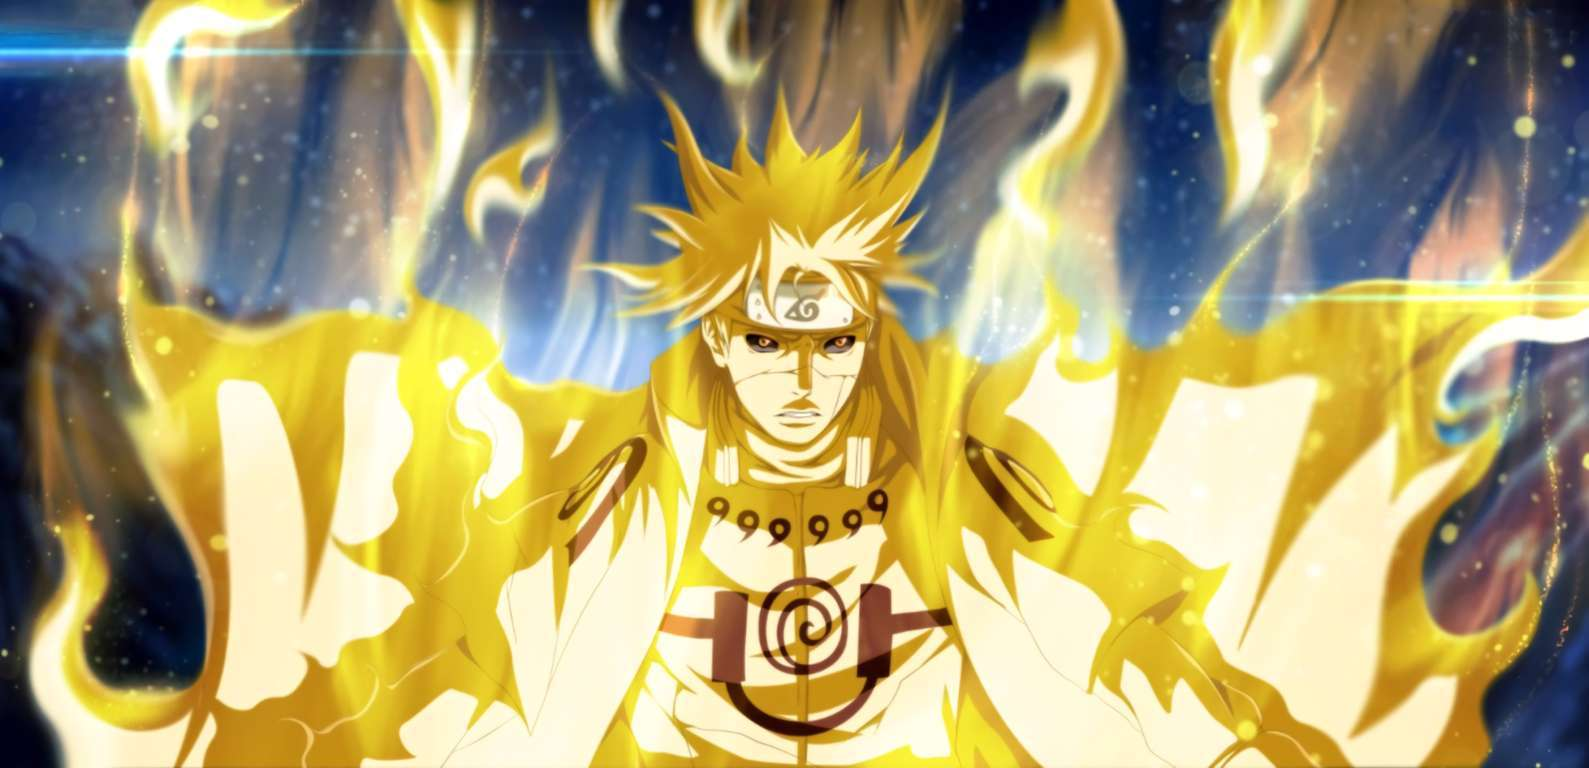 Free Download Naruto Aesthetic Wallpapers For Your Desktop Mobile & Tablet Pc